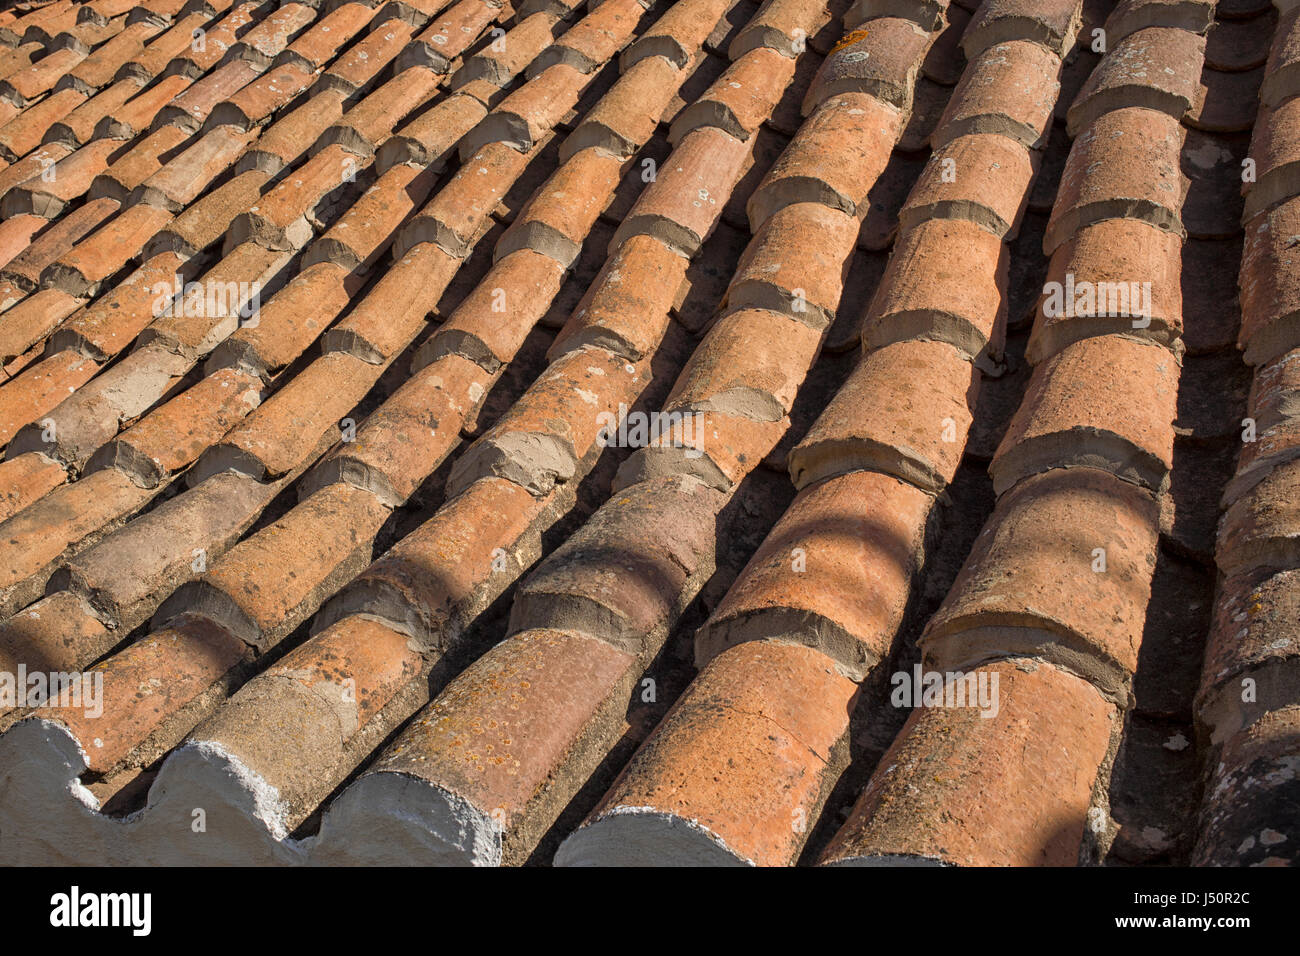 Old ceramic pottery terracotta roof tiles on rural house on gran old ceramic pottery terracotta roof tiles on rural house on gran canaria canary islands spain dailygadgetfo Images